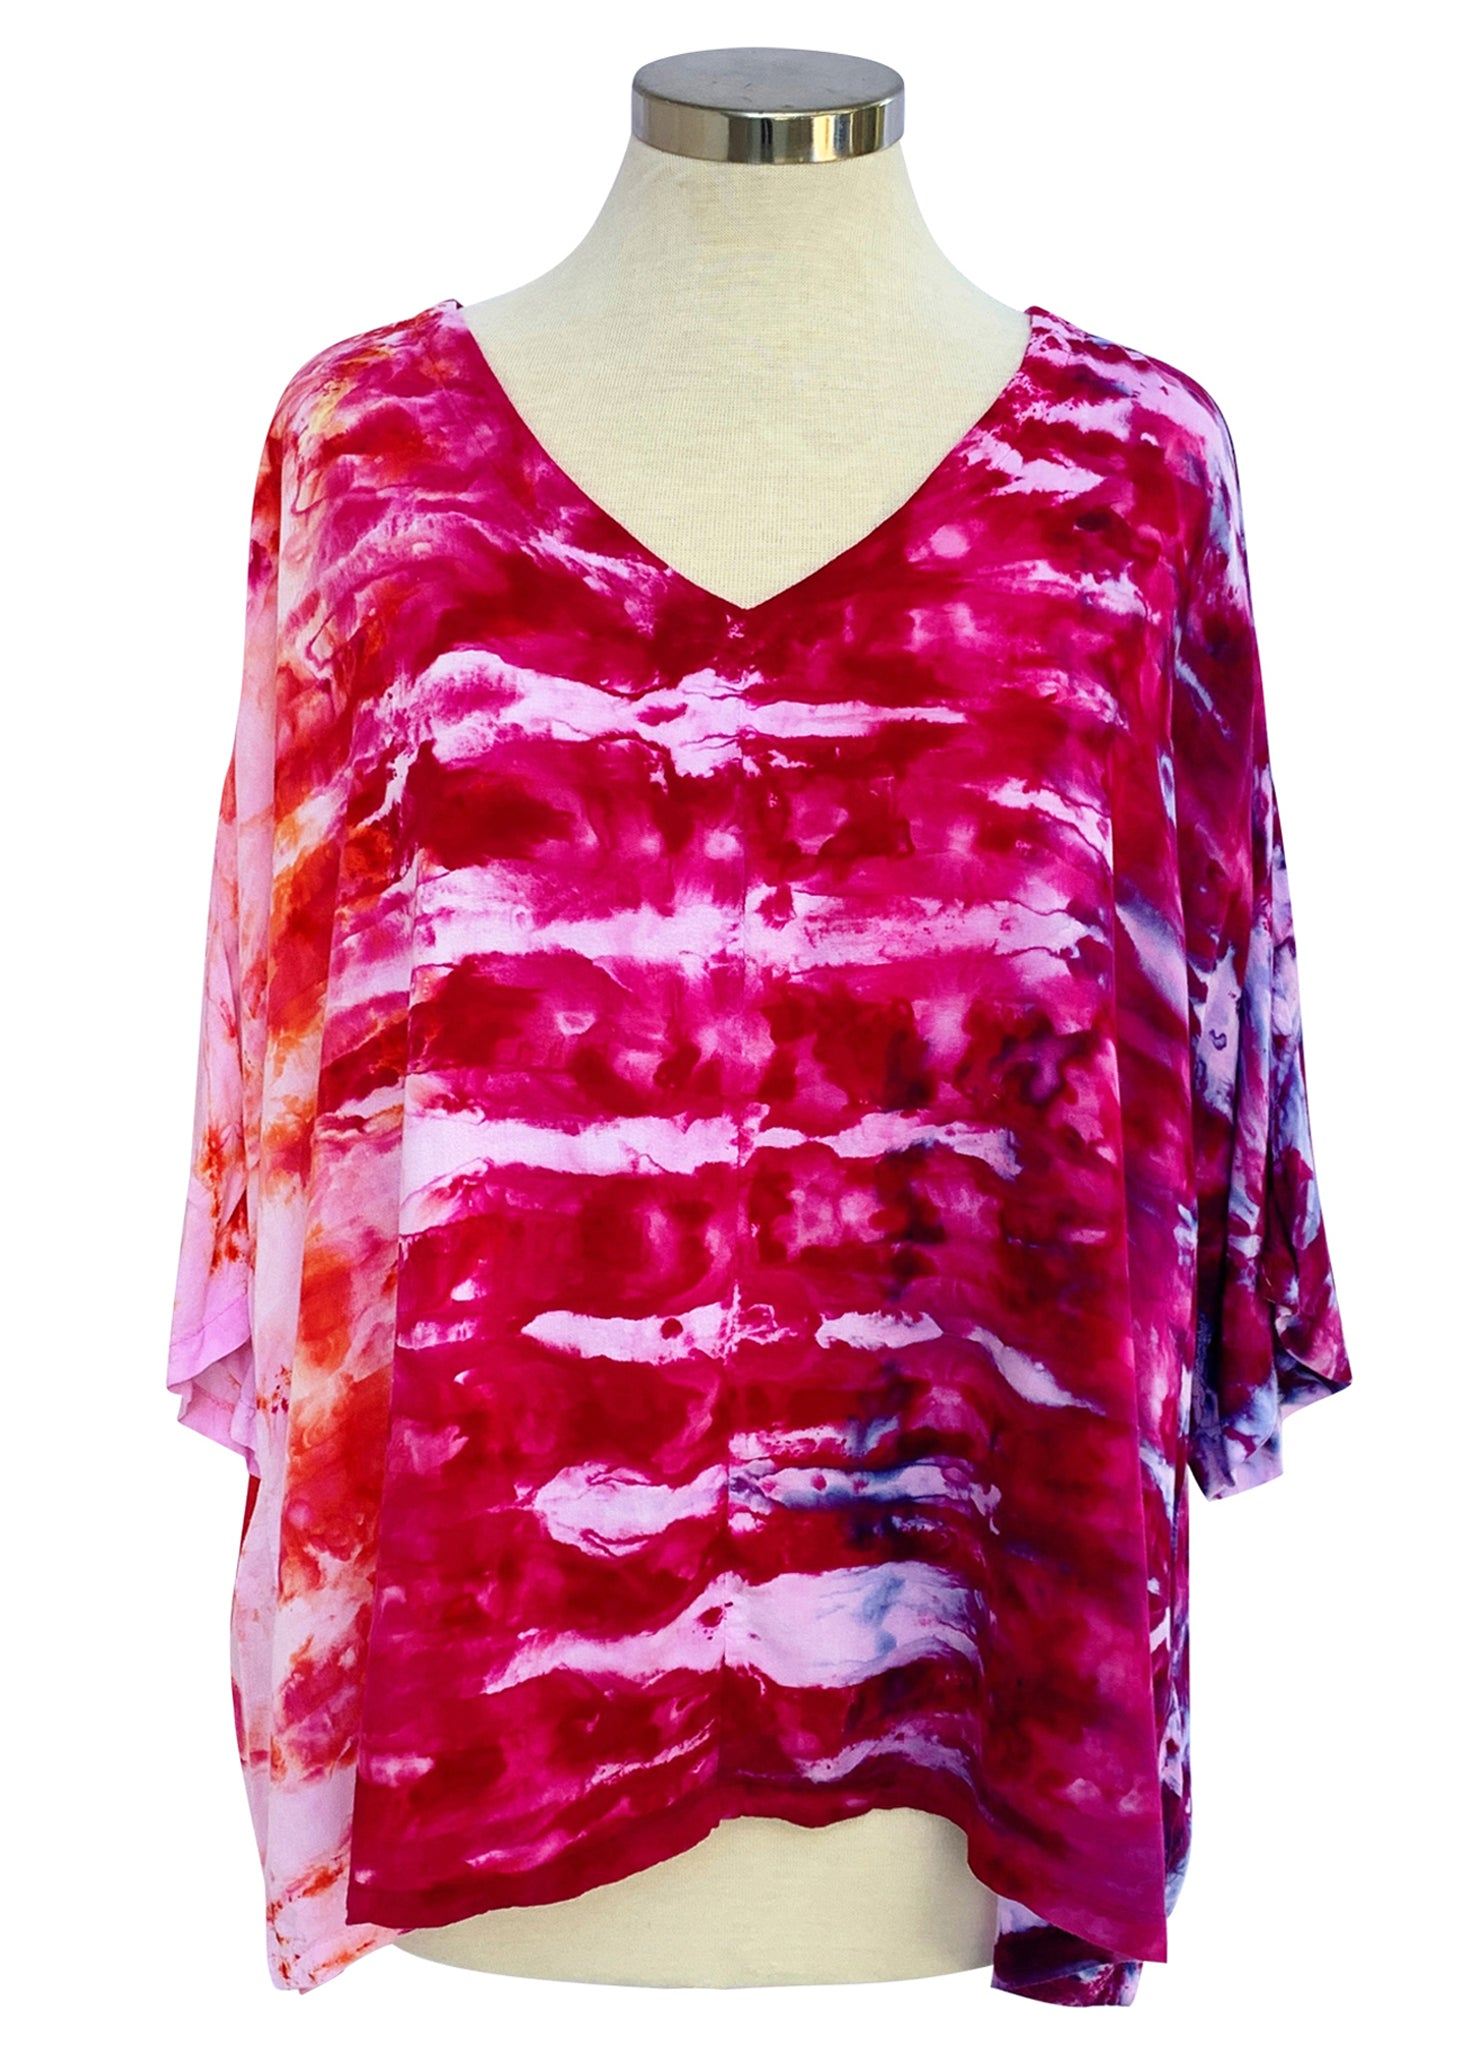 Easy Rayon Shirt in Flamingo - Top - Dyetology